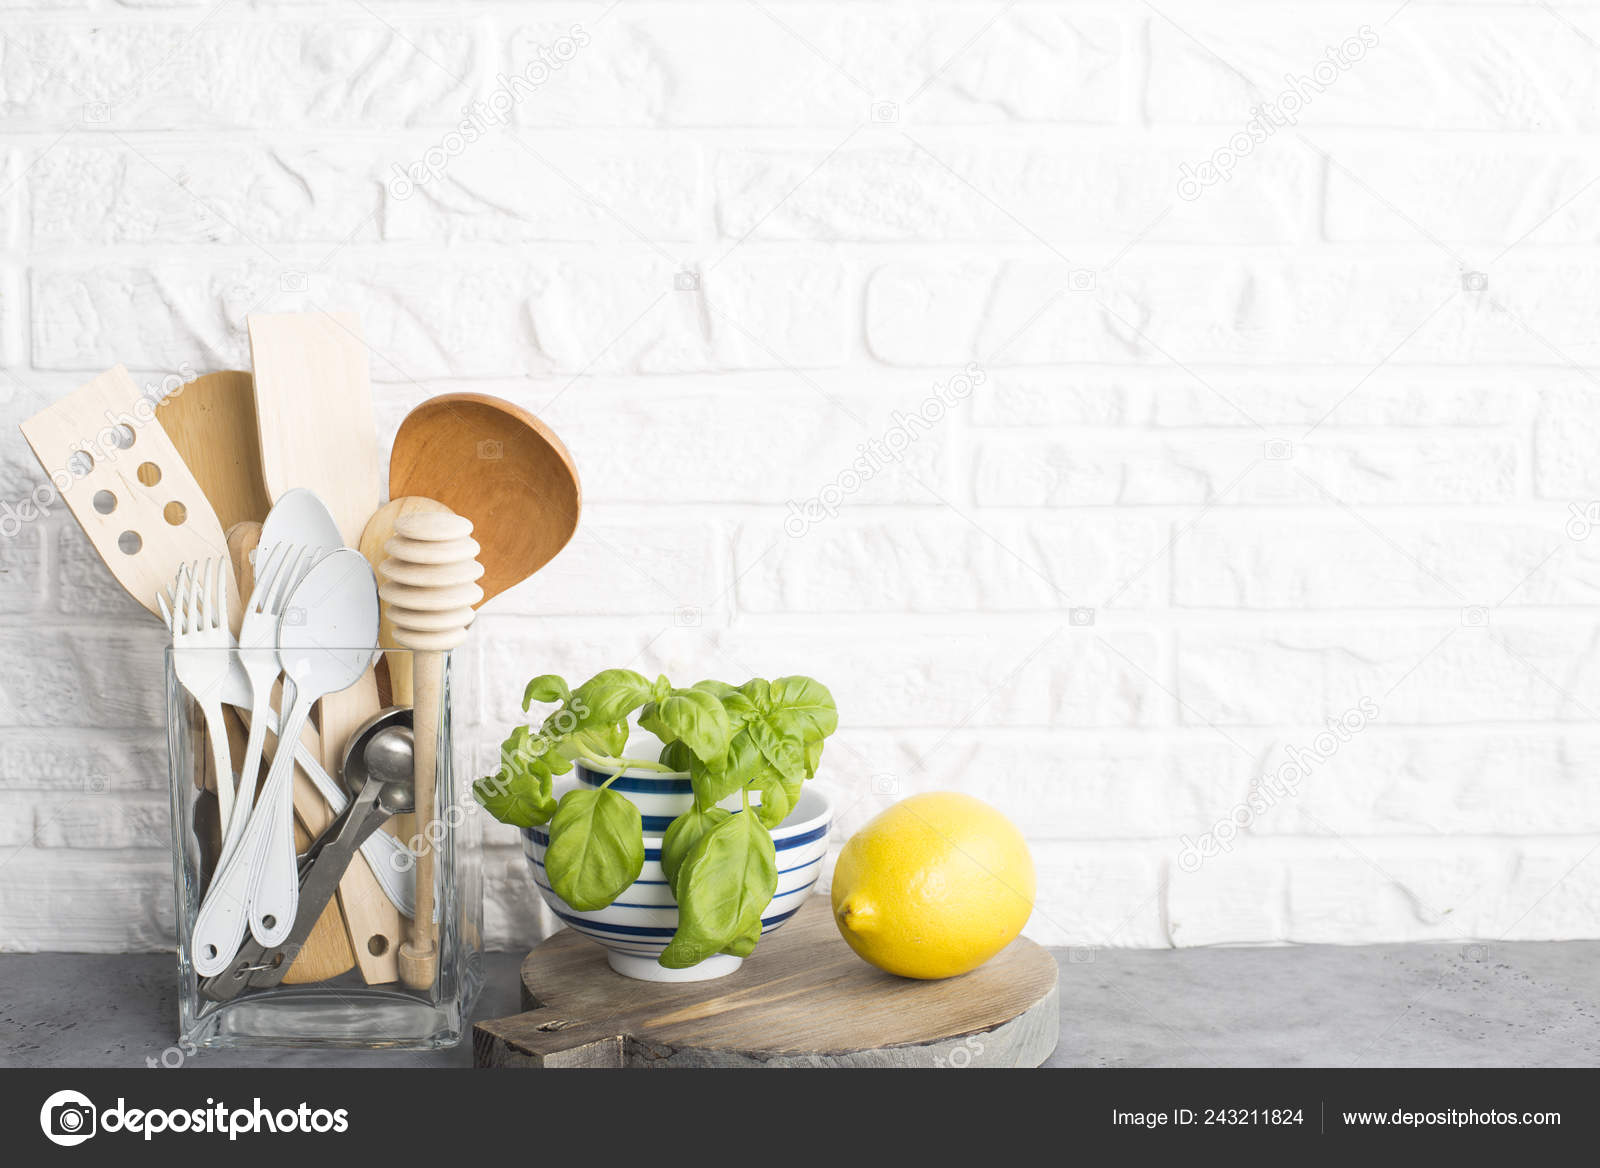 Kitchen Tools Olive Cutting Board Kitchen Shelf White Brick Wall Stock Photo C Ileishanna 243211824